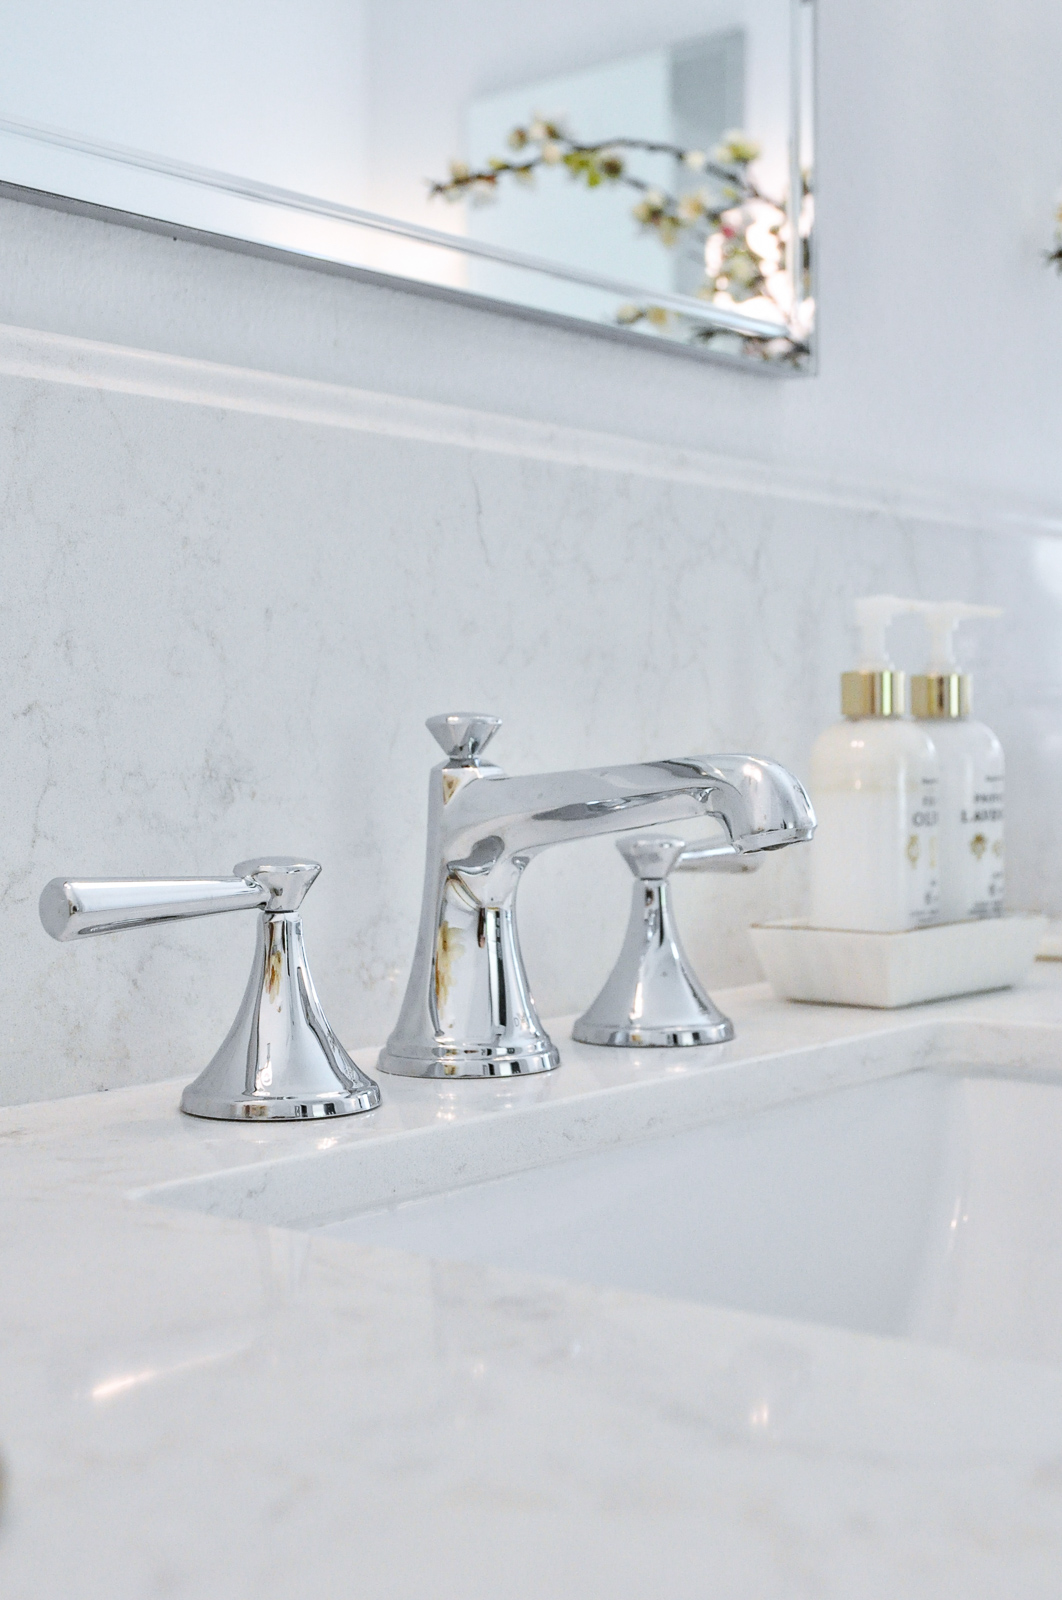 Master bathroom faucet polished nickel